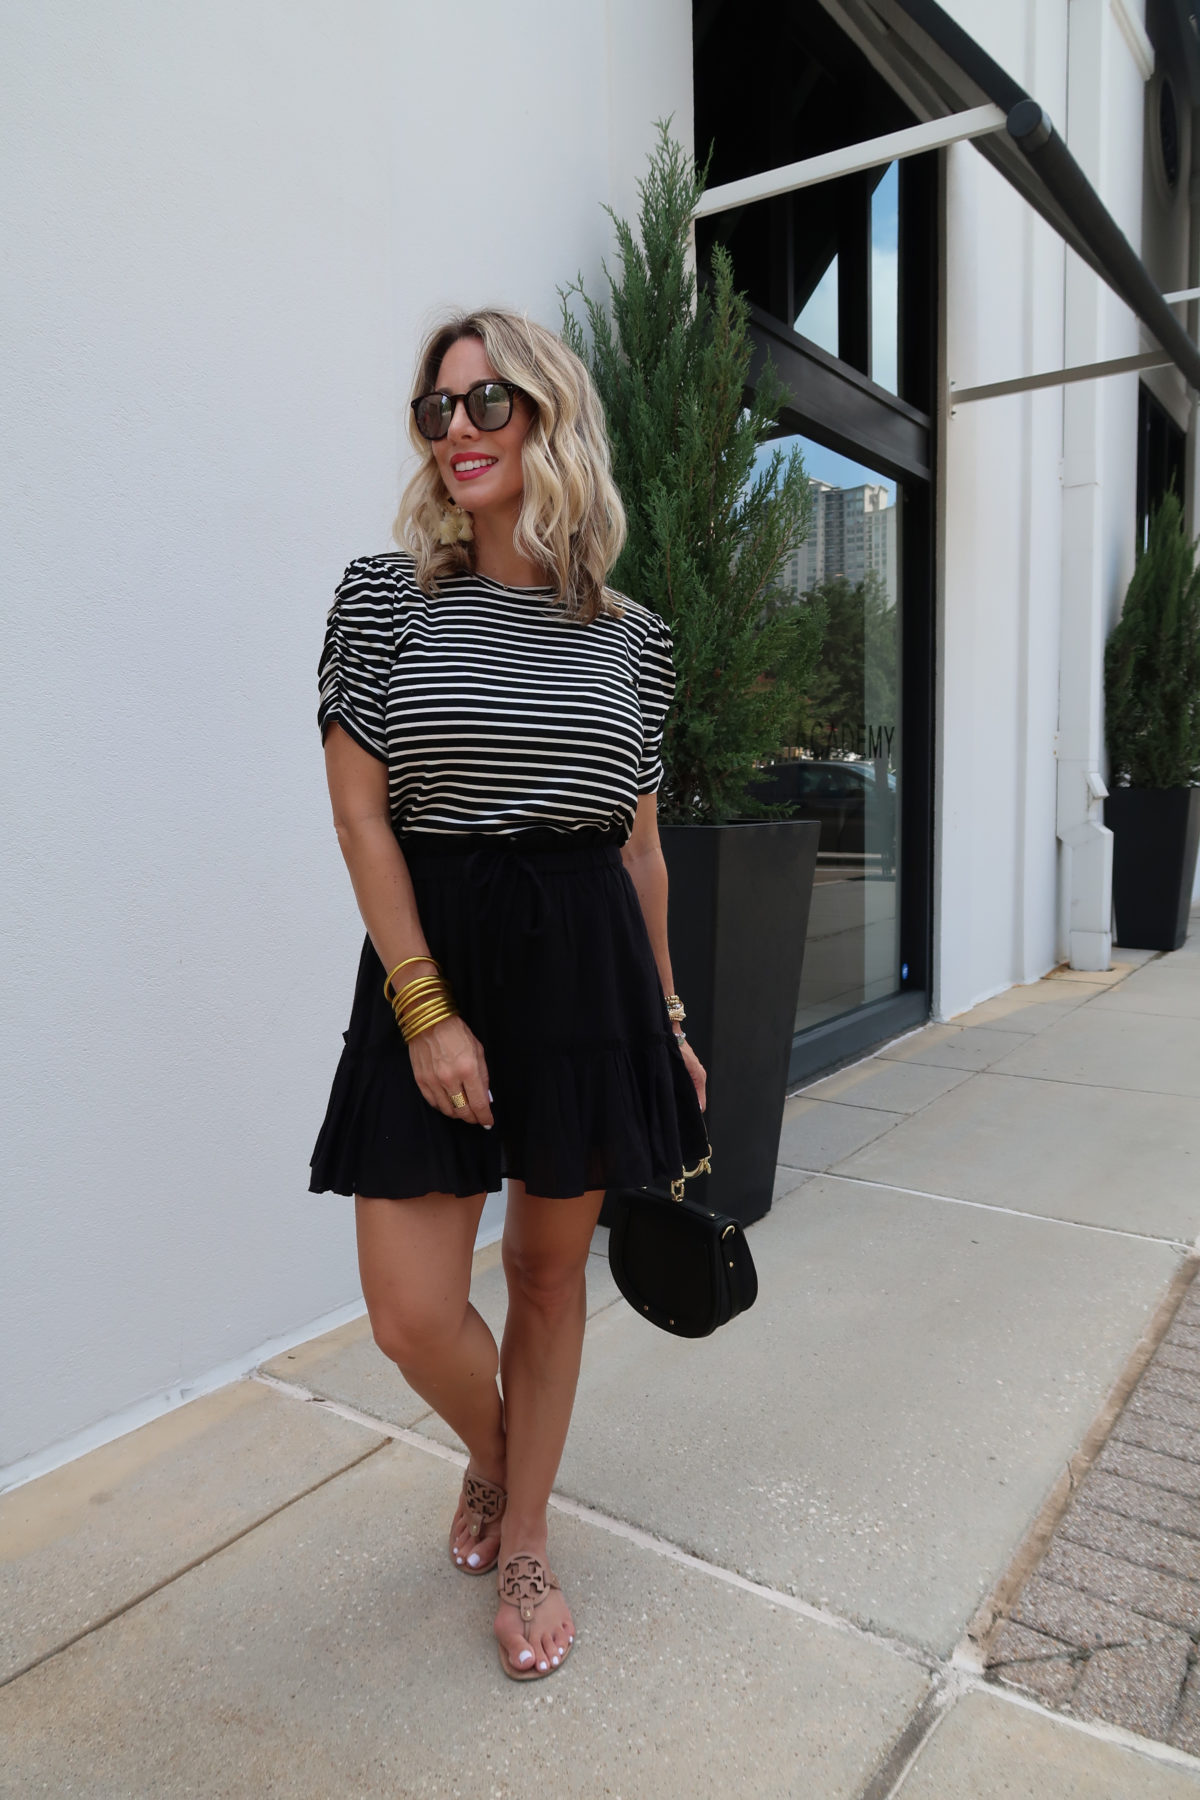 Outfit Roundup, Gibson Striped Puff Sleeve Tee, Black Tiered Mini Skirt, Miller Sandals, Ring Bag